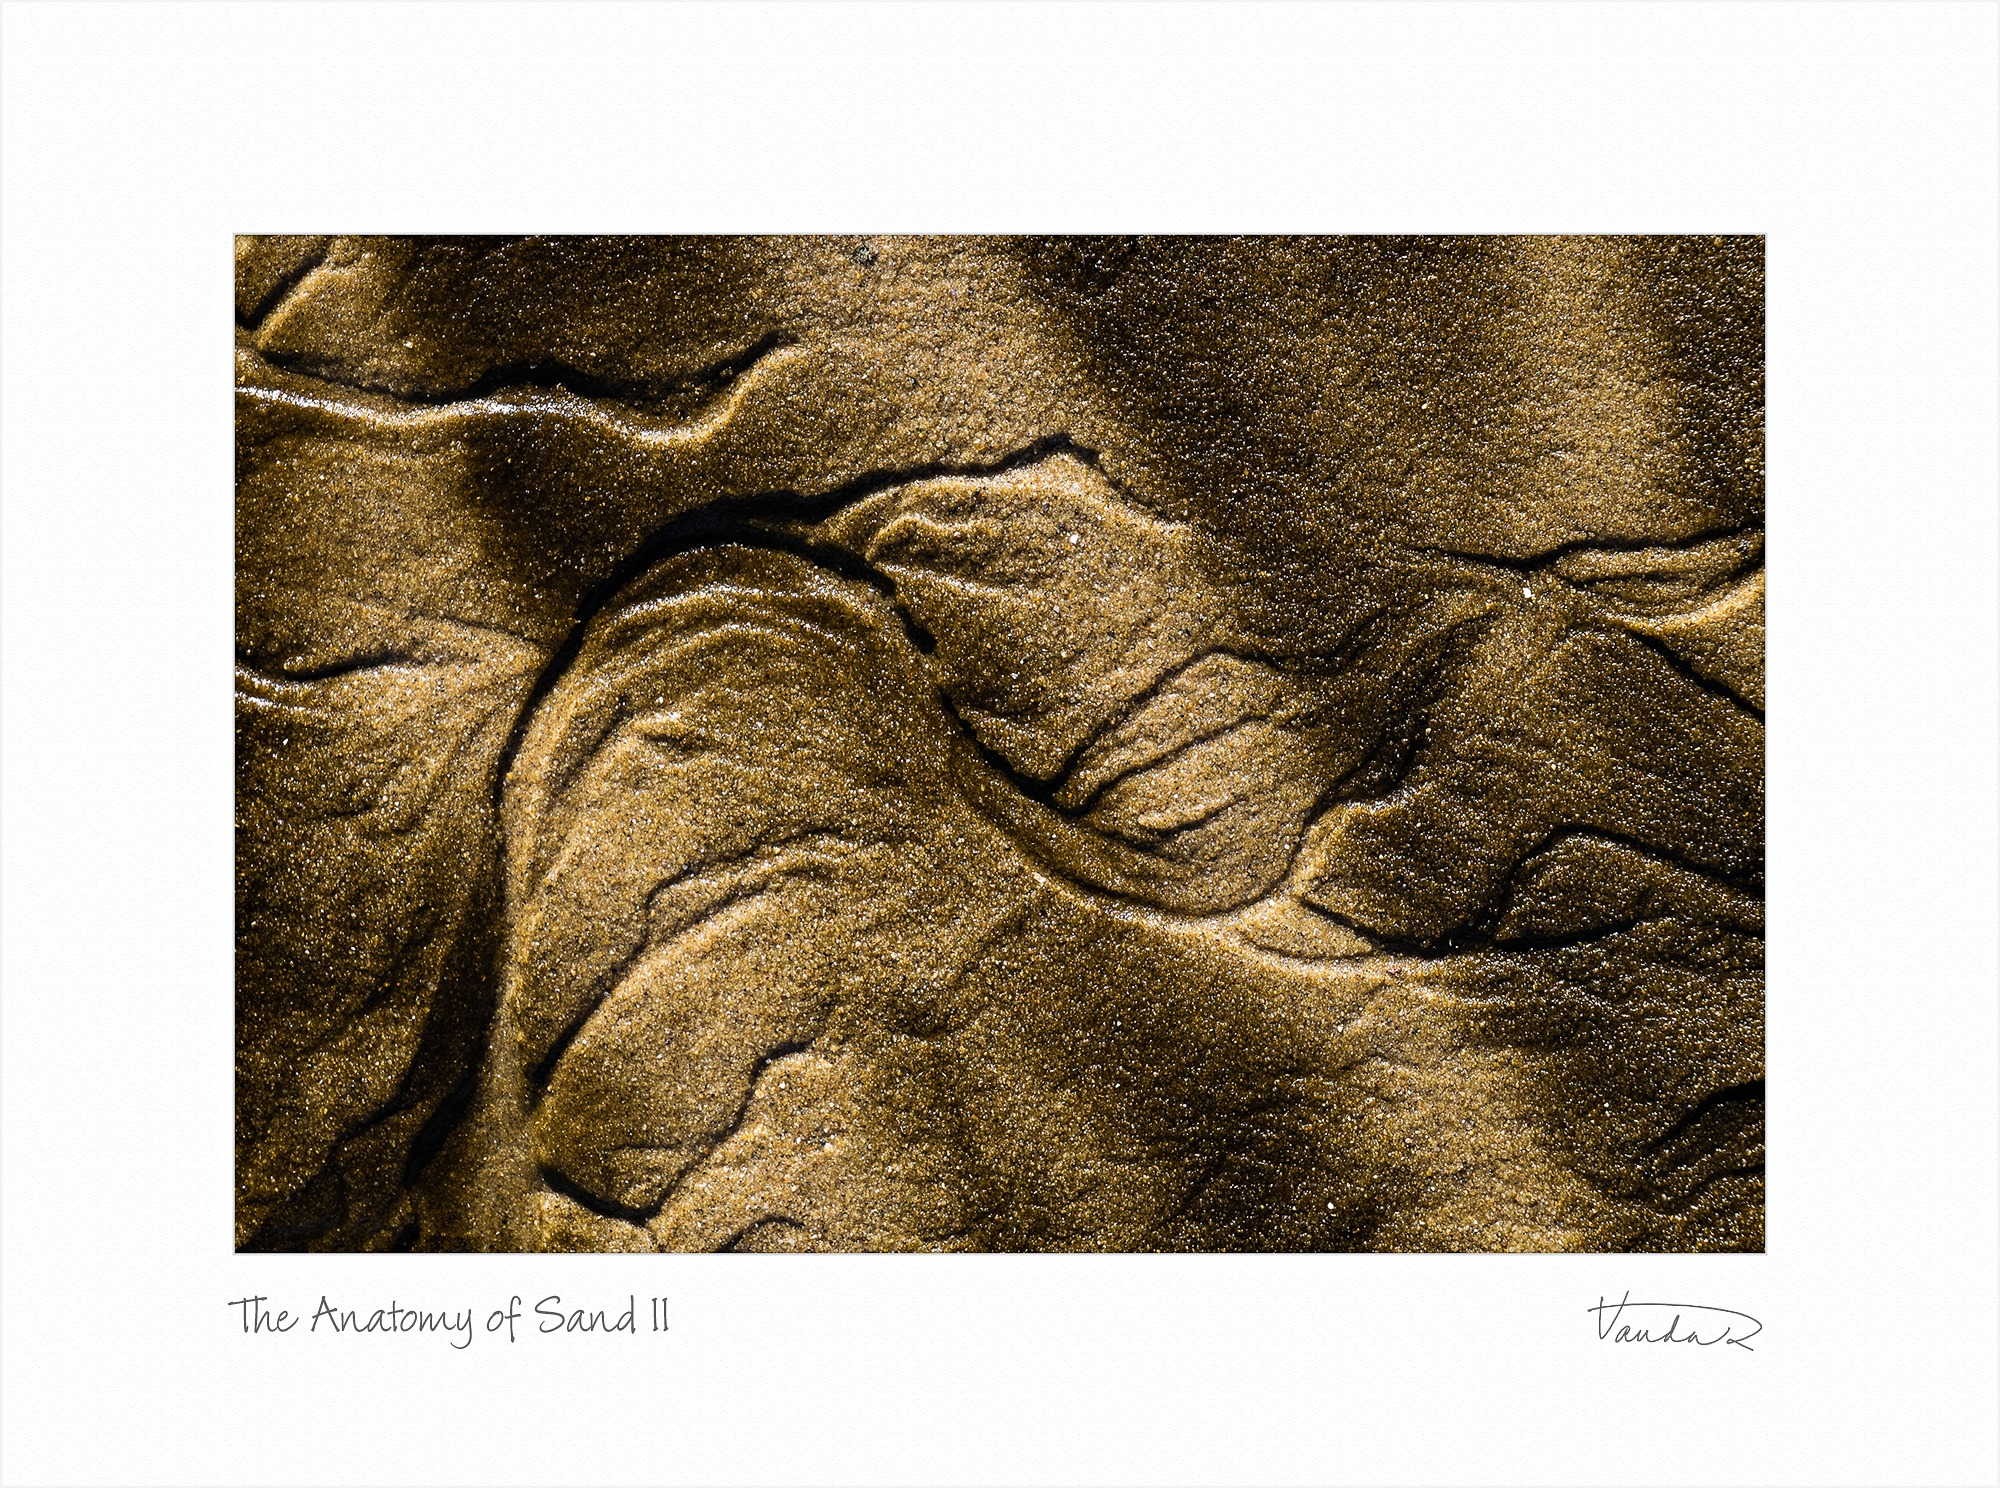 The Anatomy of Sand II